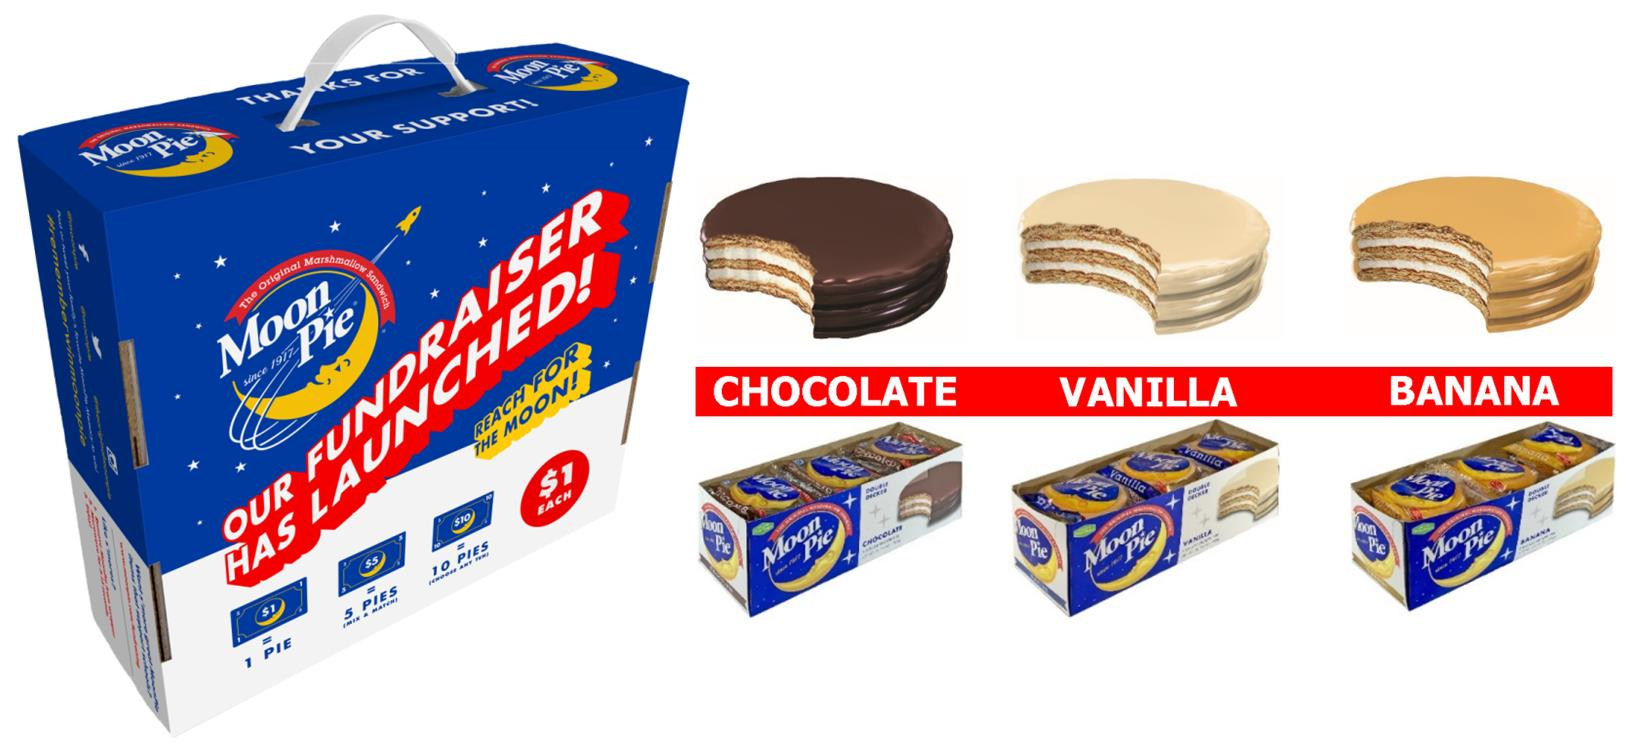 Moon Pie Carrier with Cartons of 3 Available Flavors